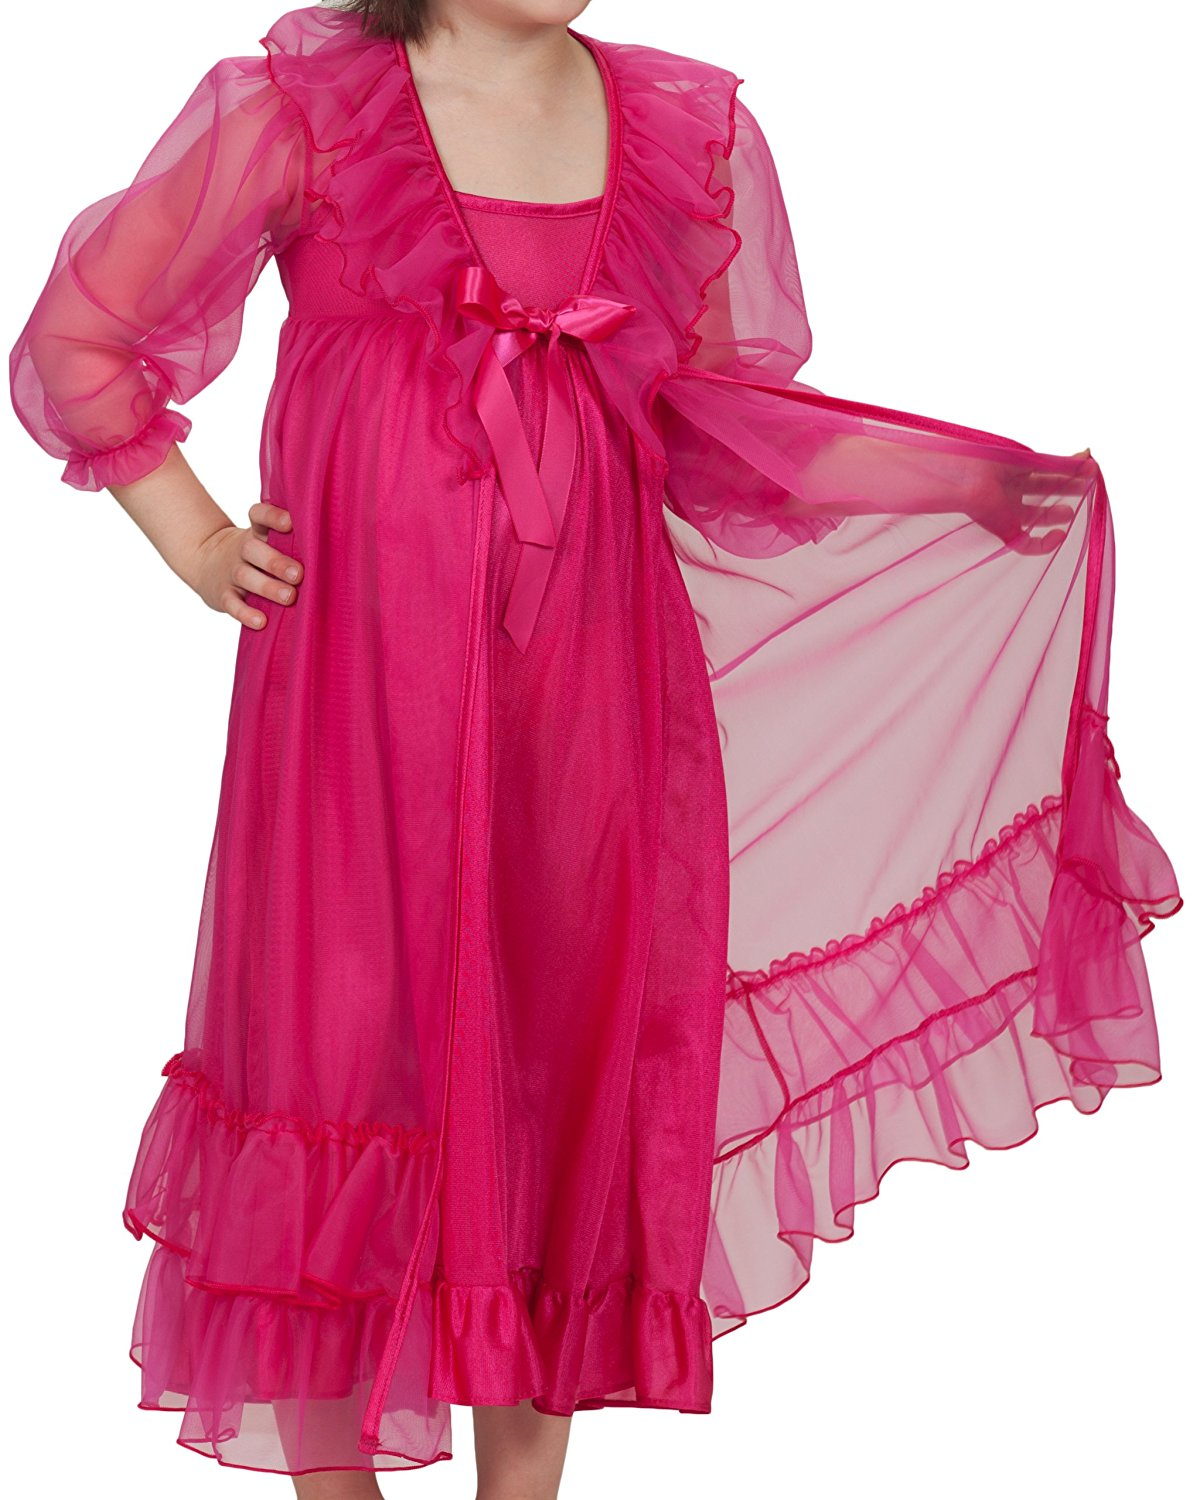 Cheap Nightgown And Robe, find Nightgown And Robe deals on line at ...